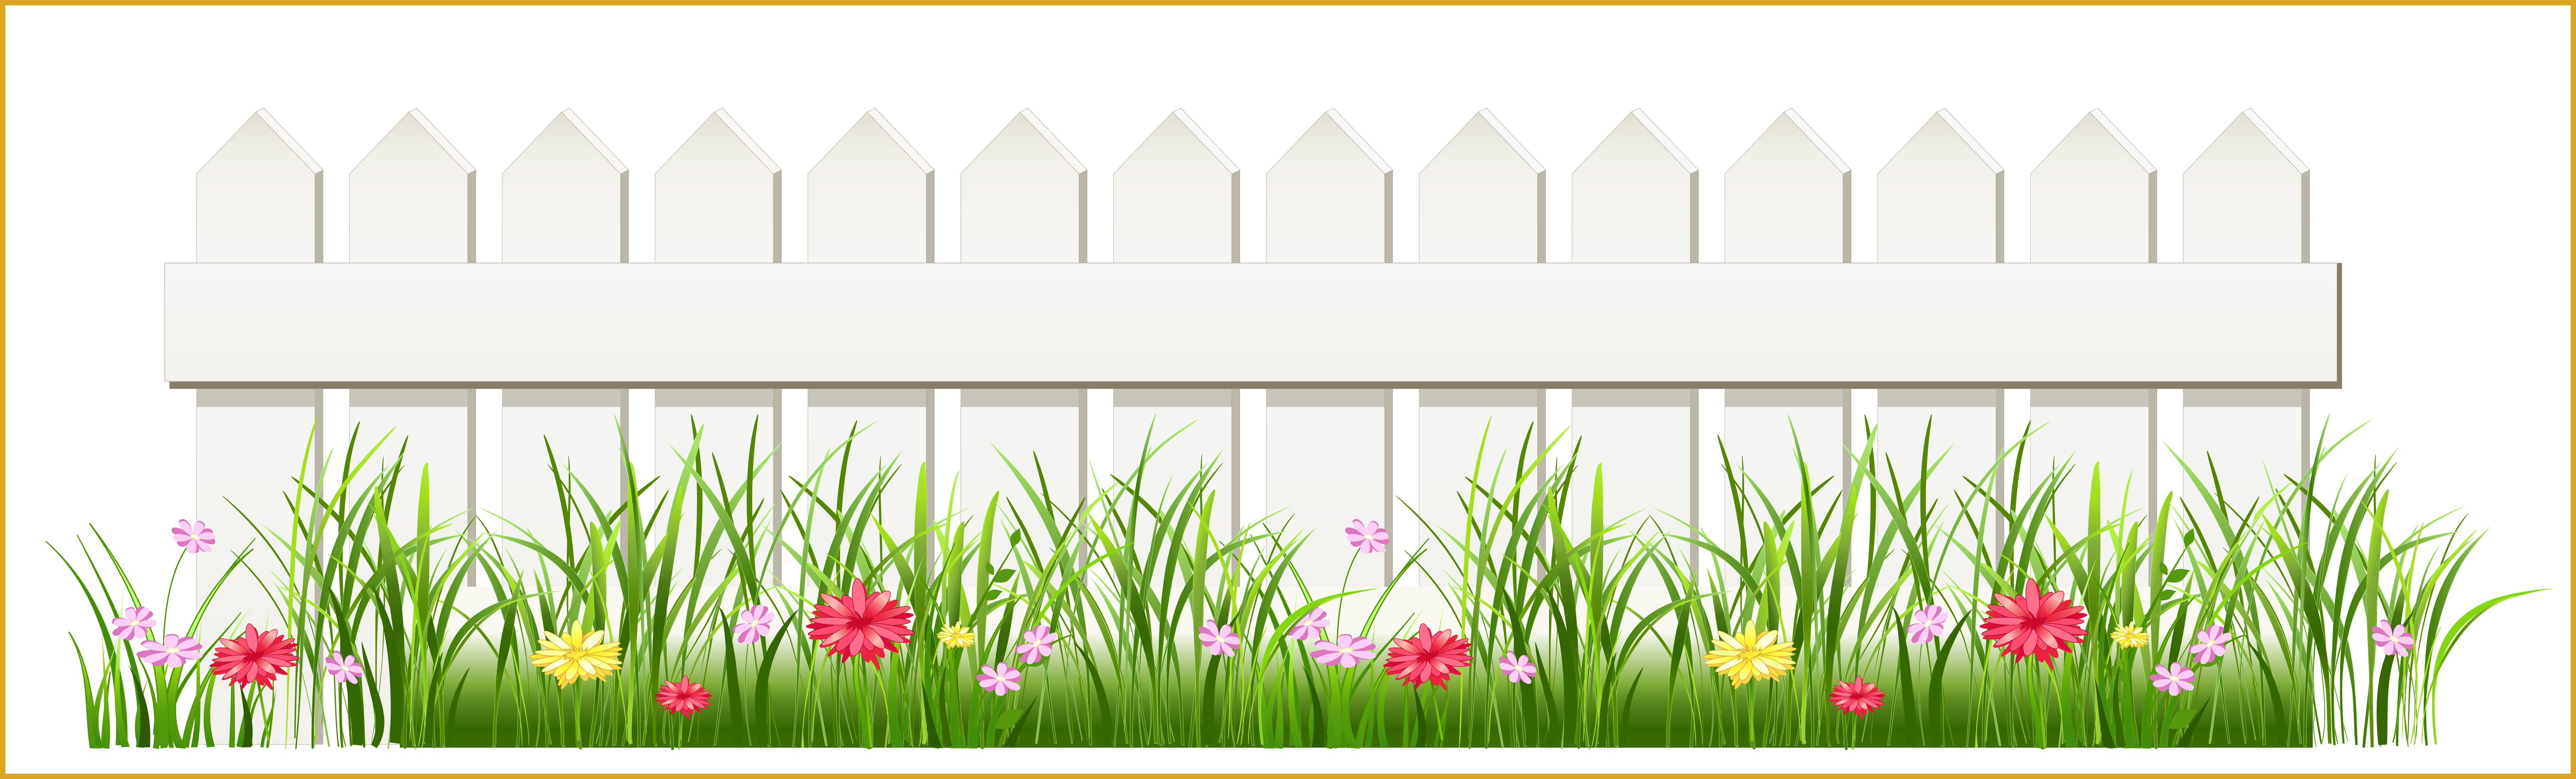 Farm clipart grass. Appealing red tulips border